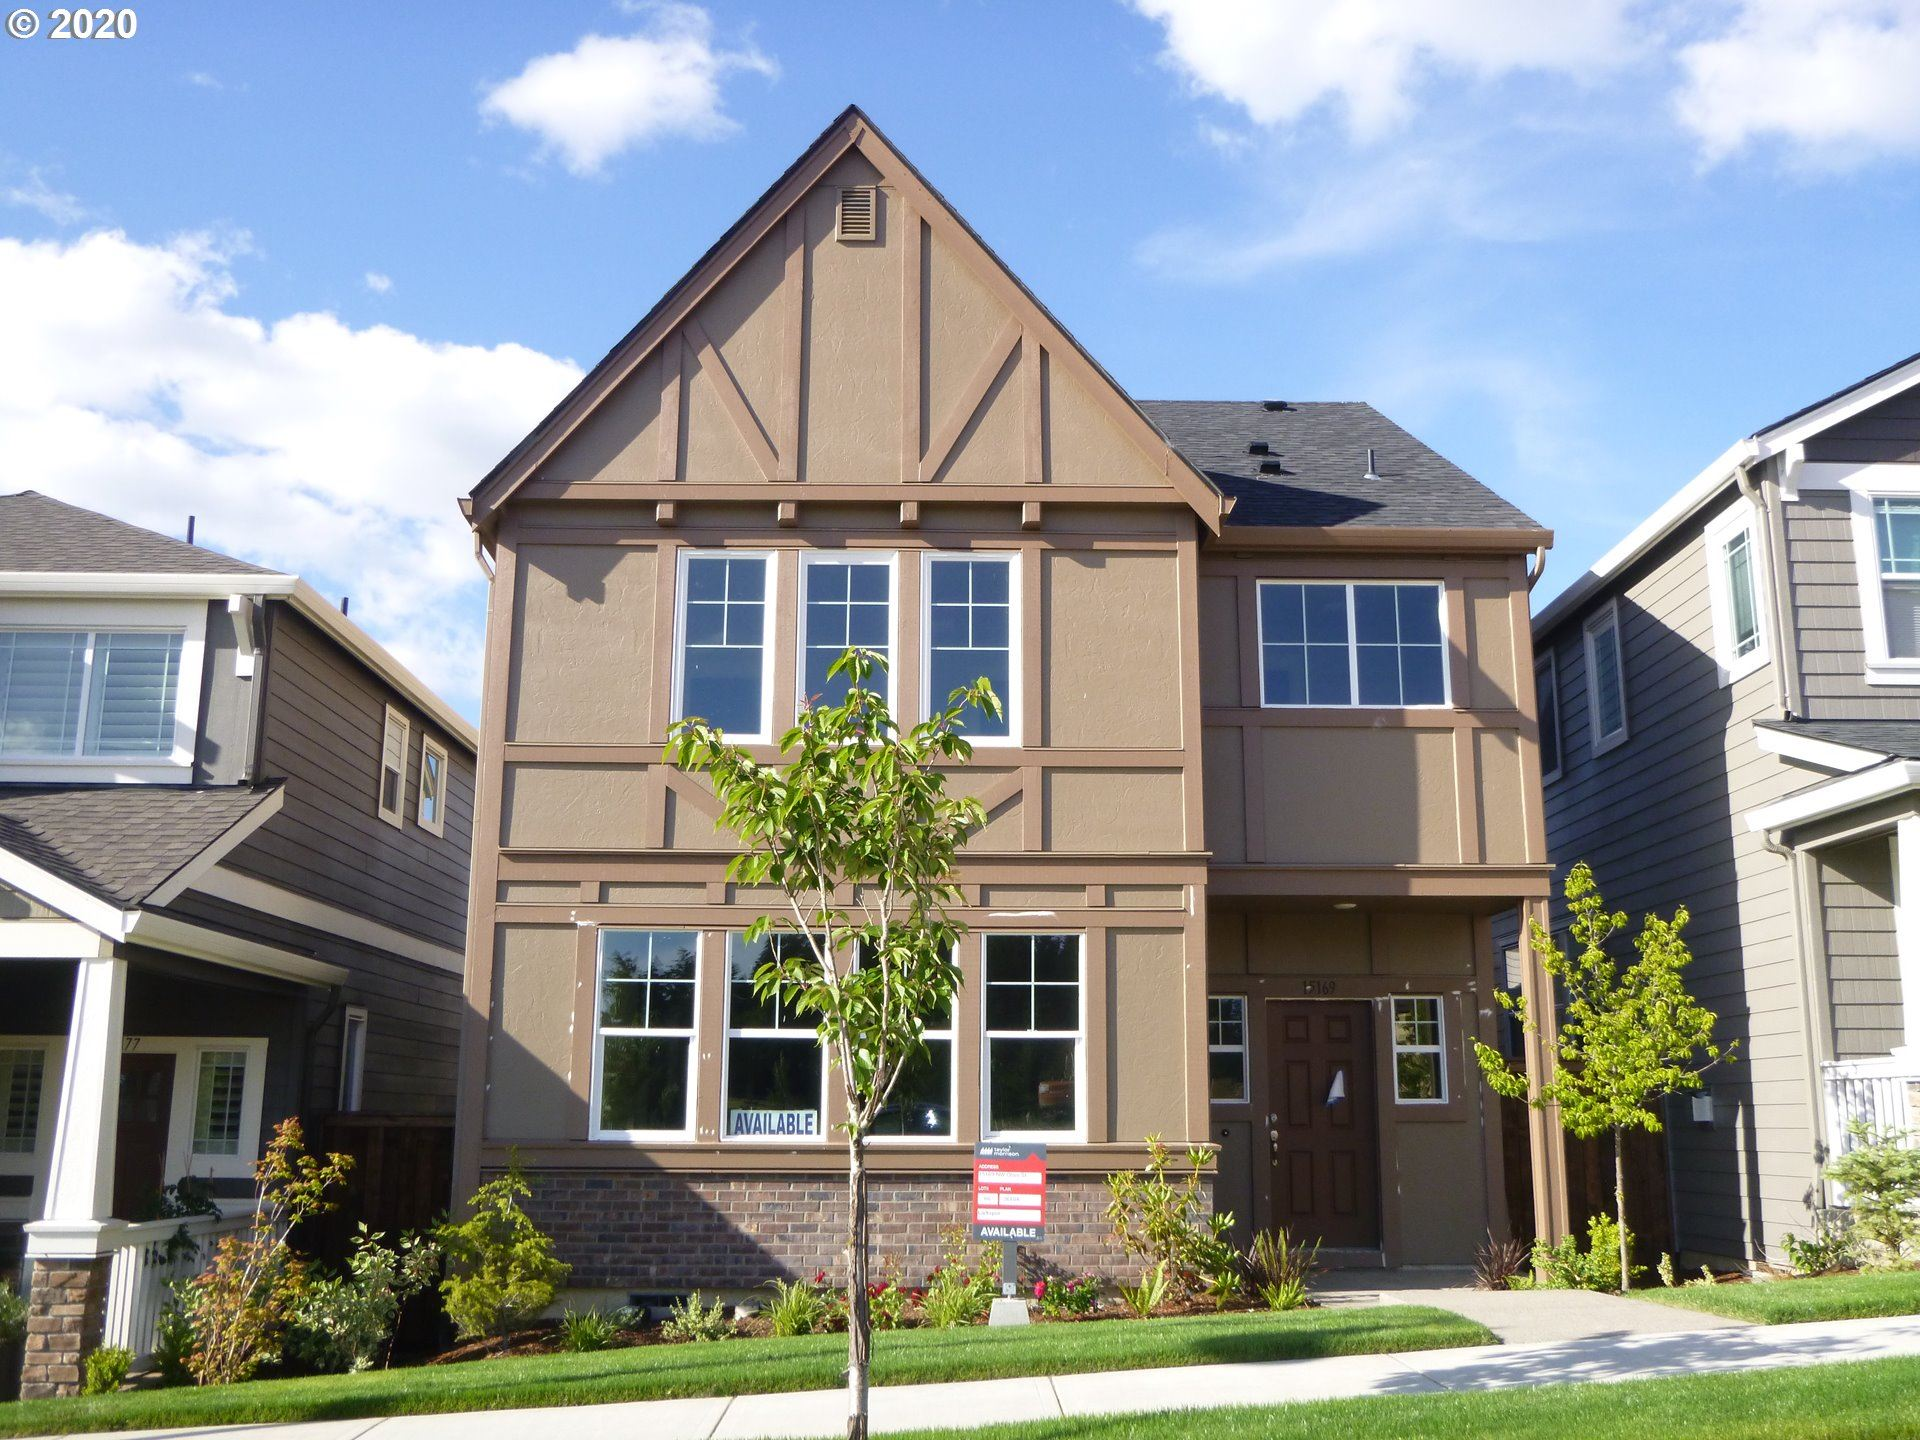 15169 NW Olive ST, Portland, OR 97229 - MLS#: 20560816